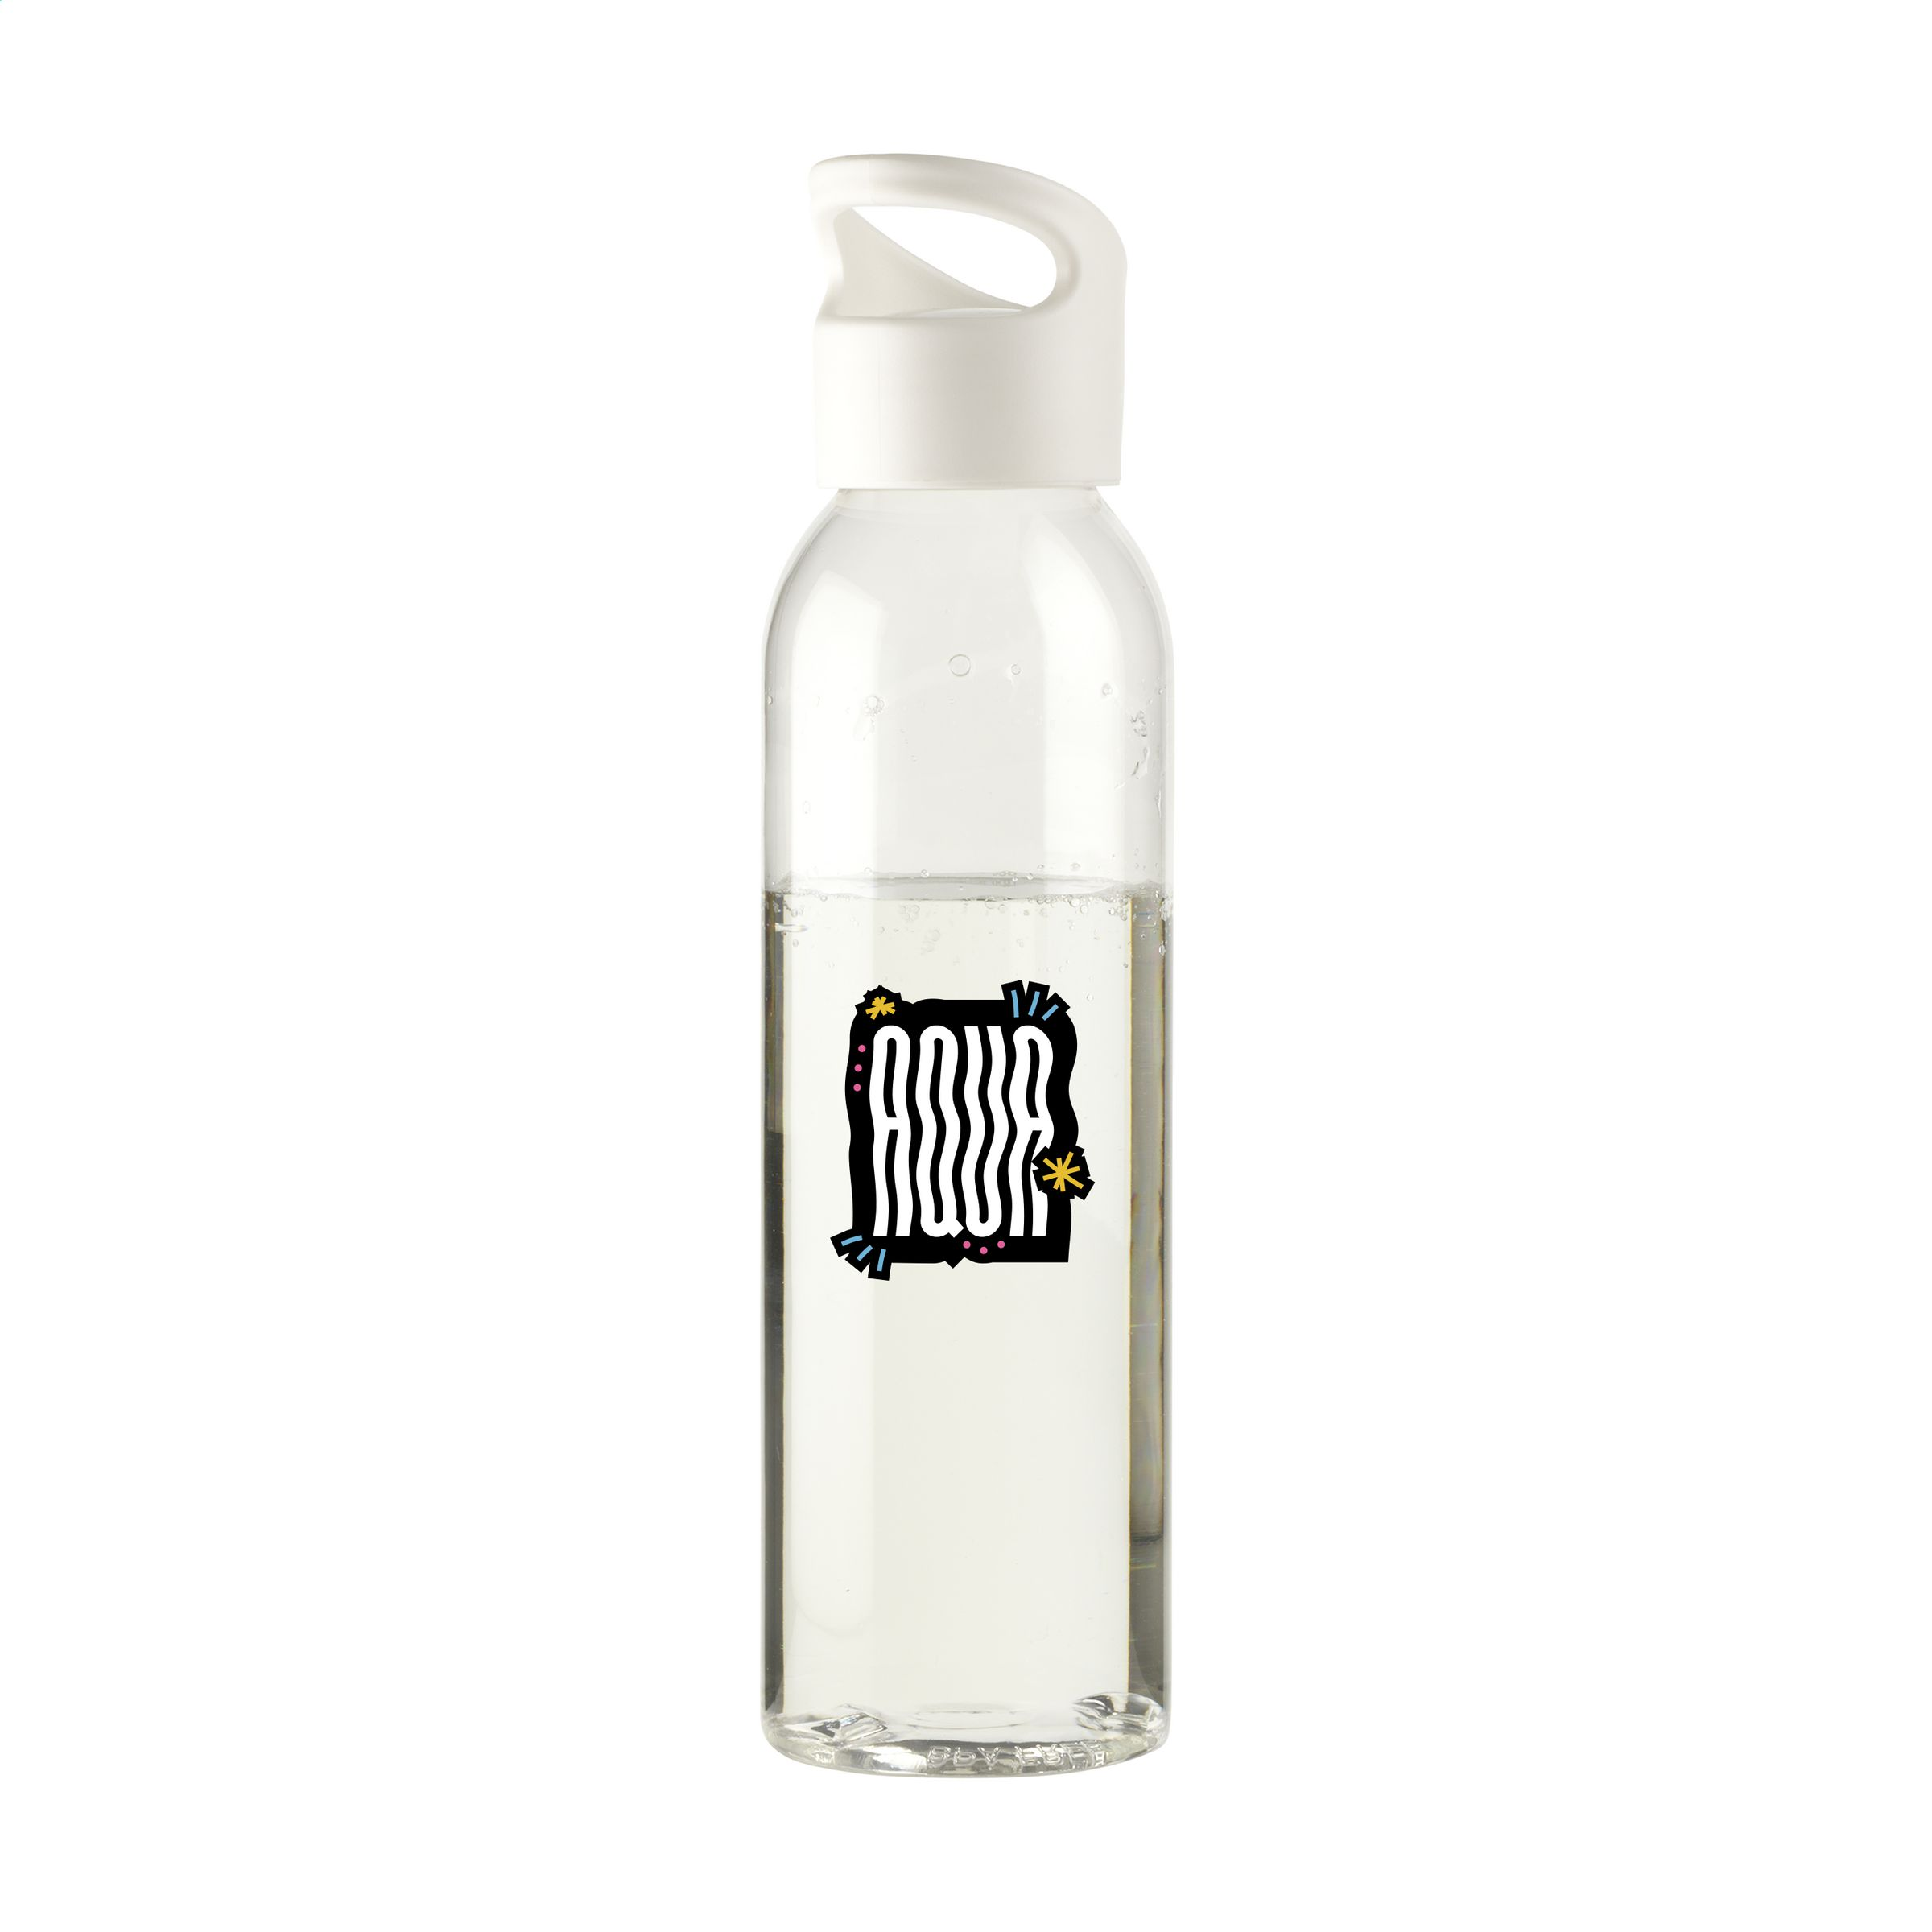 Sirius waterbottle